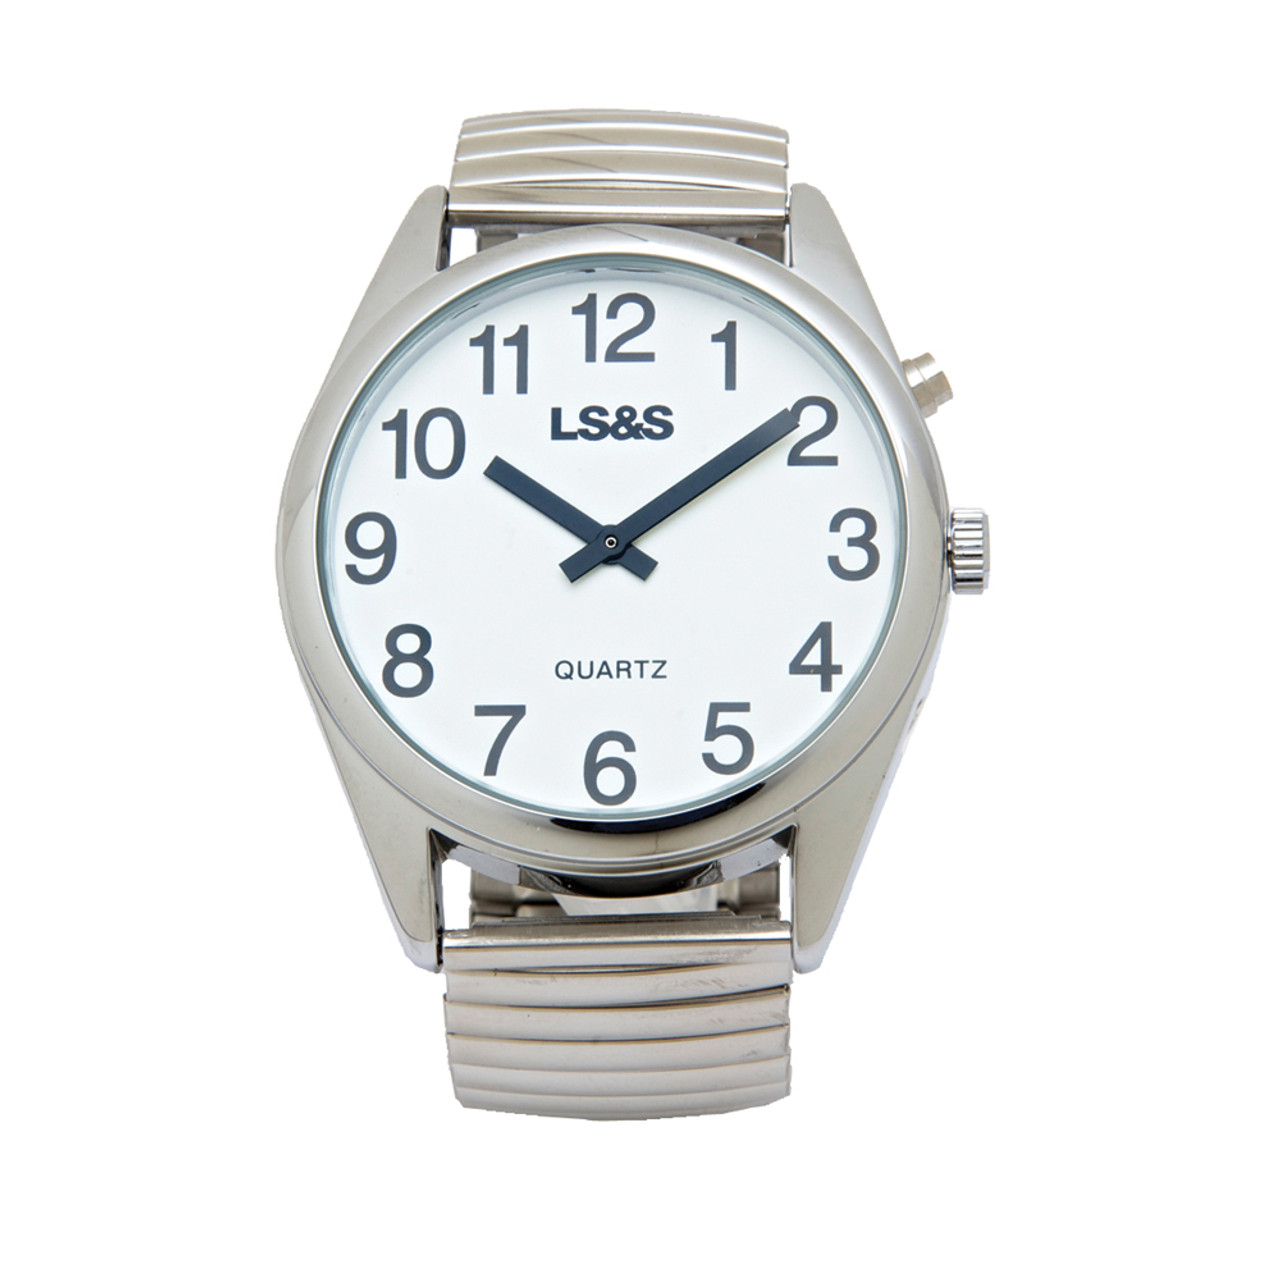 XL Talking Watch - 1 Button - Silver Case - Silver Band White Face - Black Numbers